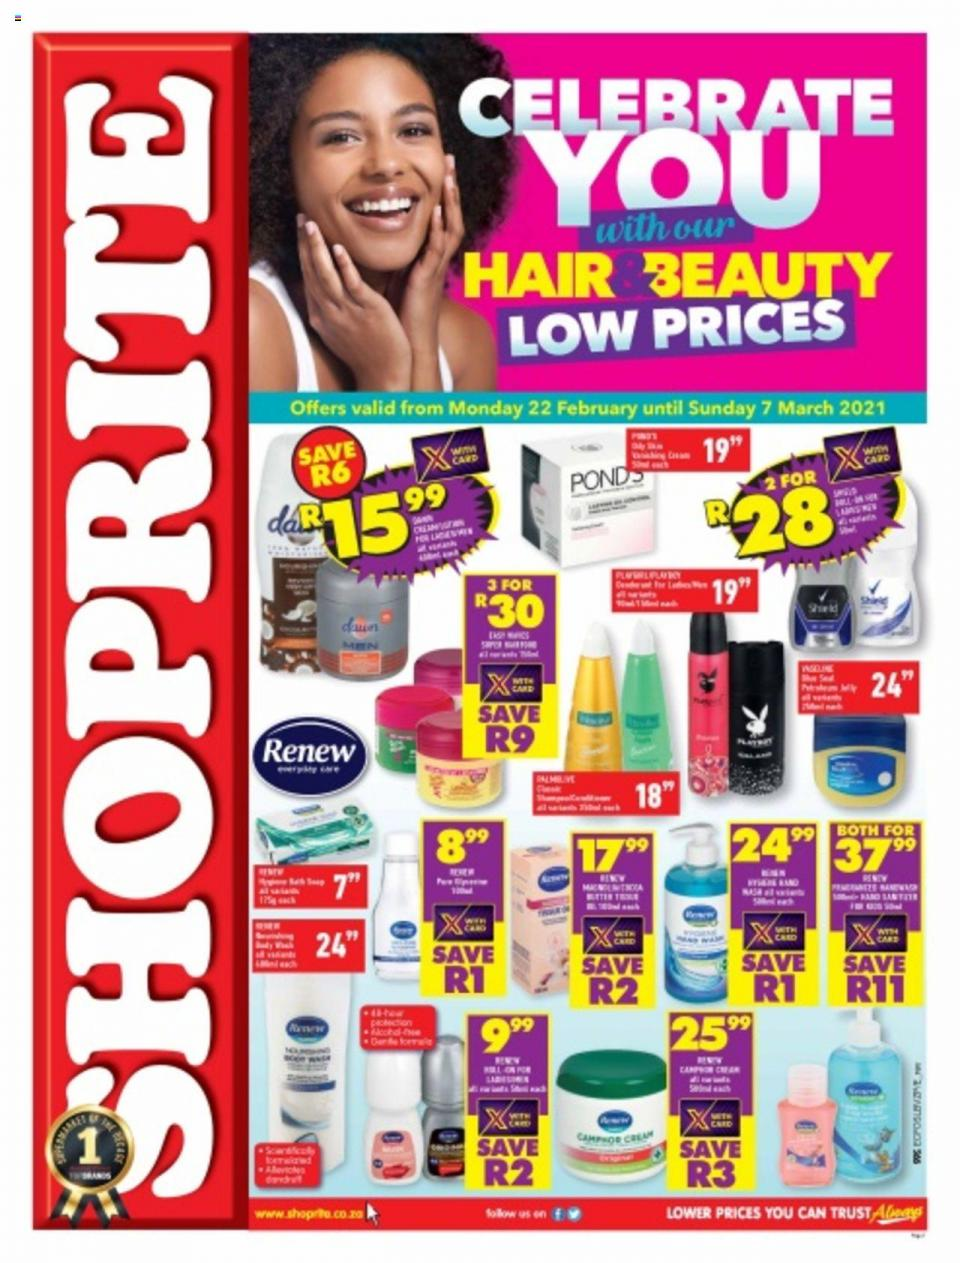 shoprite specials hair beauty sale 22 february 2021